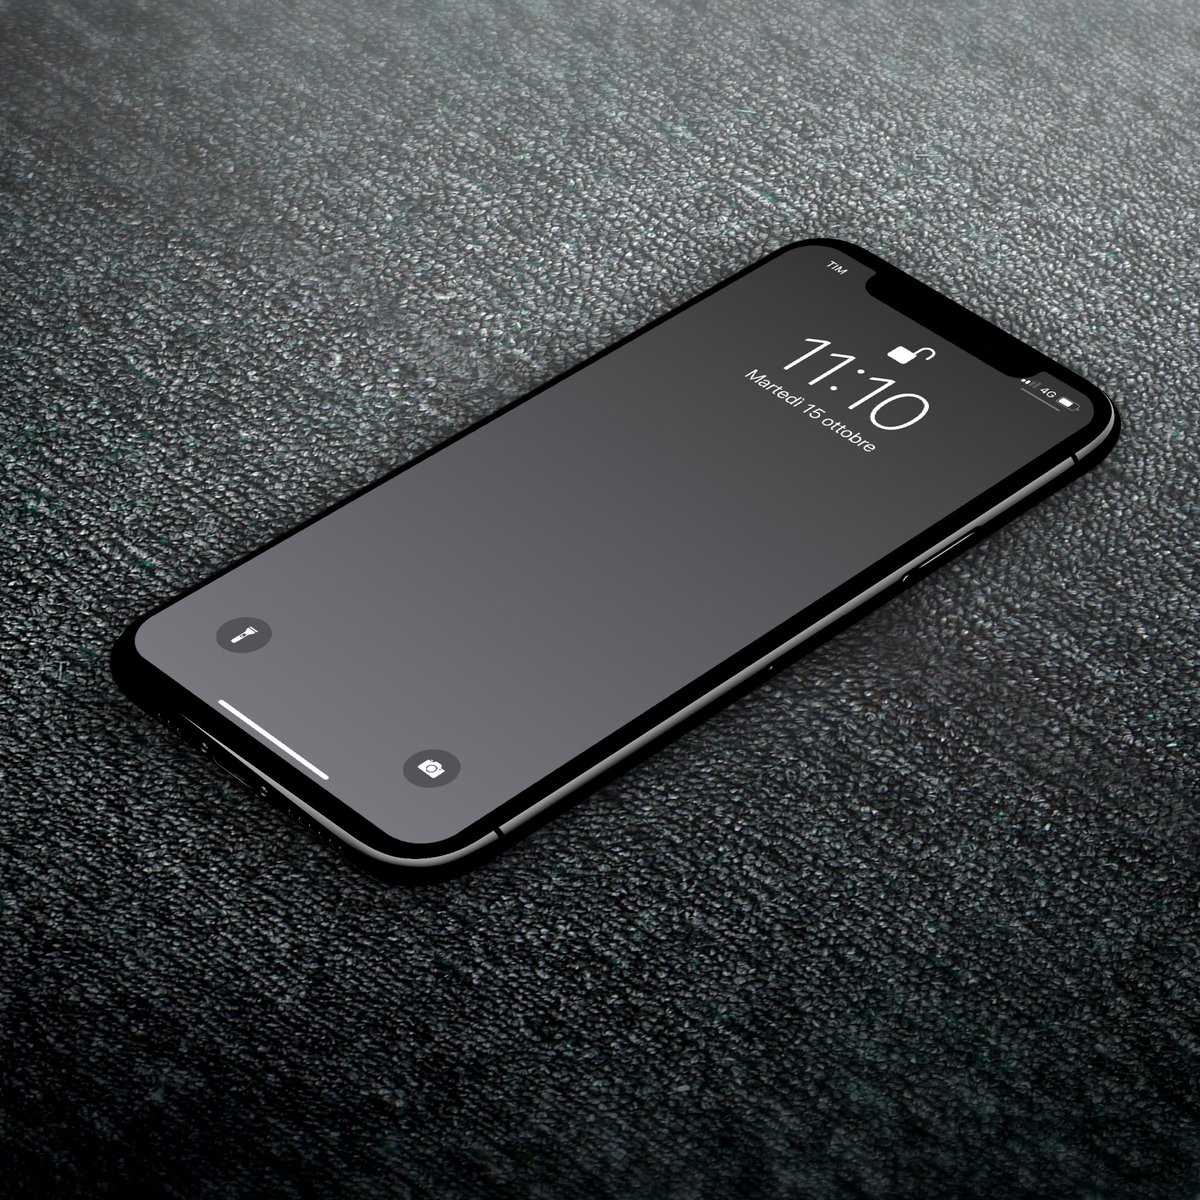 Ar7 On Twitter Wallpapers Gradient Space Grey Wallpaper For Iphone11promax Iphone11pro Iphone11 Iphonexsmax Iphonexr Iphonexs Iphonex All Other Iphone Download Https T Co Rhksdaqccv Prod Ar72014 Https T Co